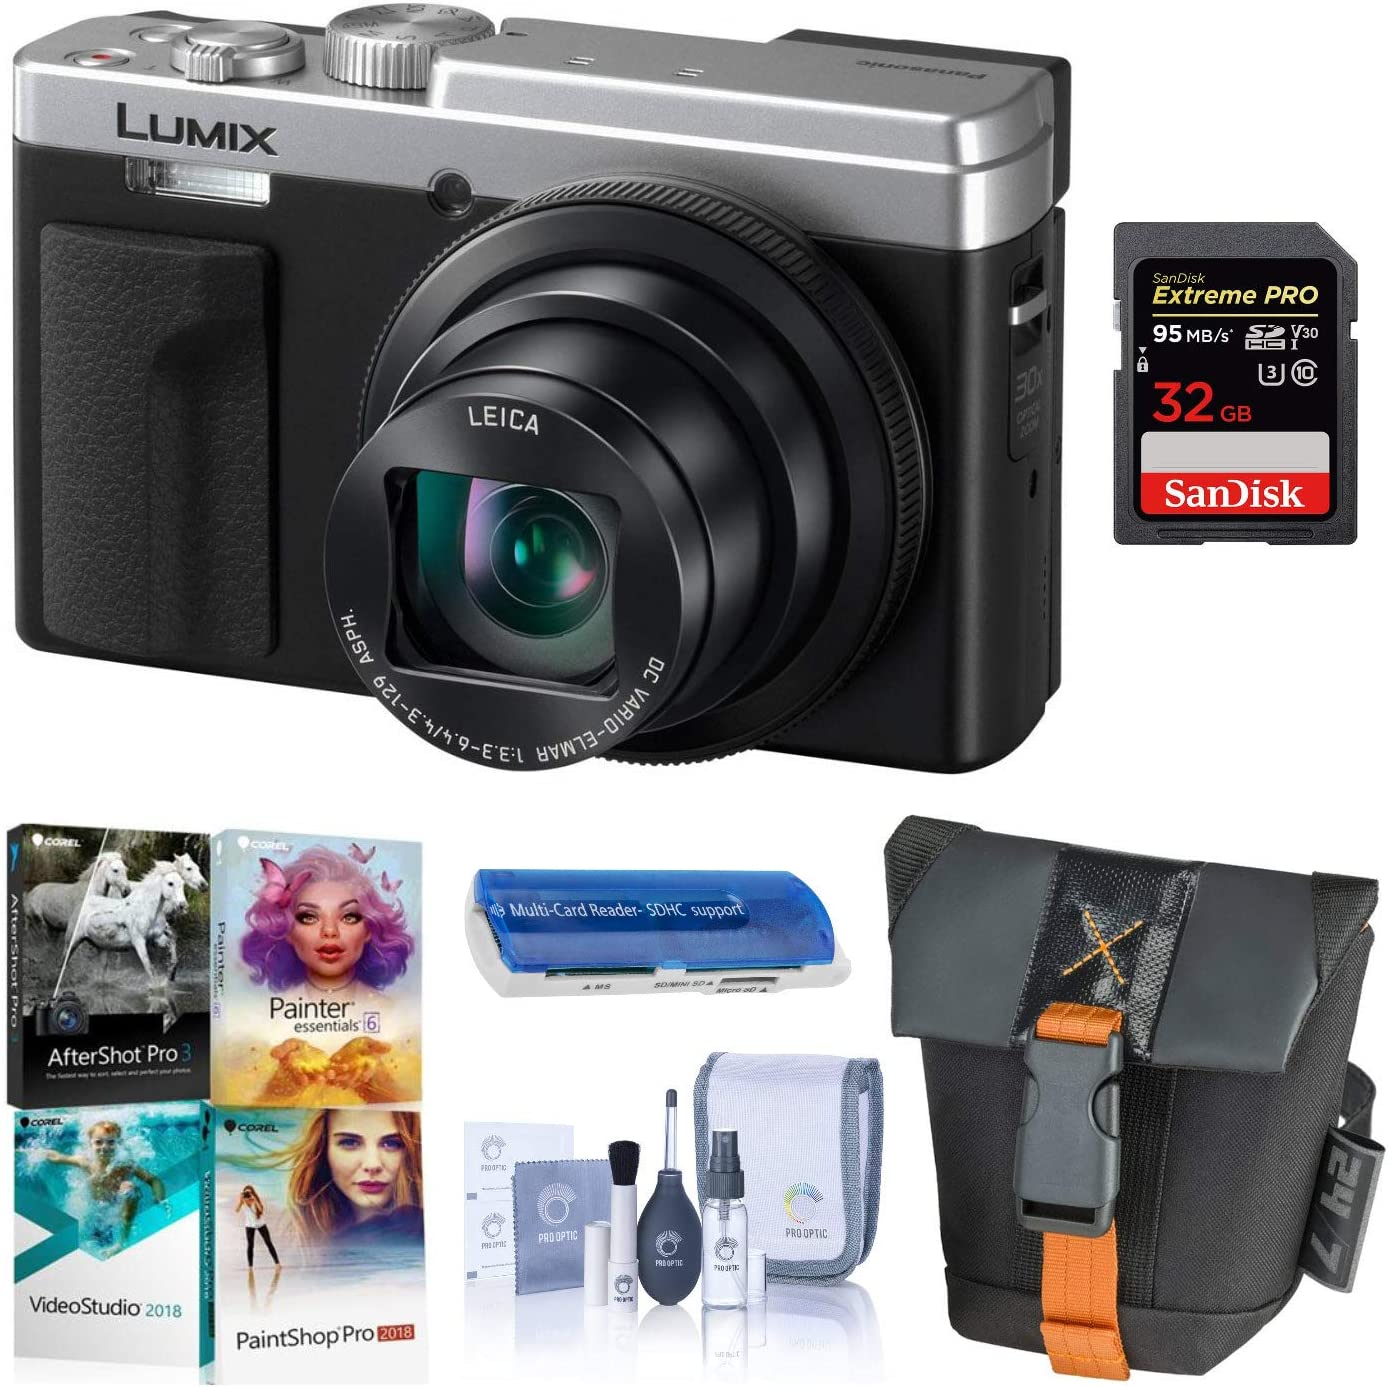 Panasonic LUMIX ZS80, 20.3 Megapixel Digital Camera, 4K Video, 30X Zoom Leica Lens DC-ZS80S (Silver), Bundle with Camera Bag, Corel PC Software Pack, 32GB SD Card, Cleaning Kit, Card Reader